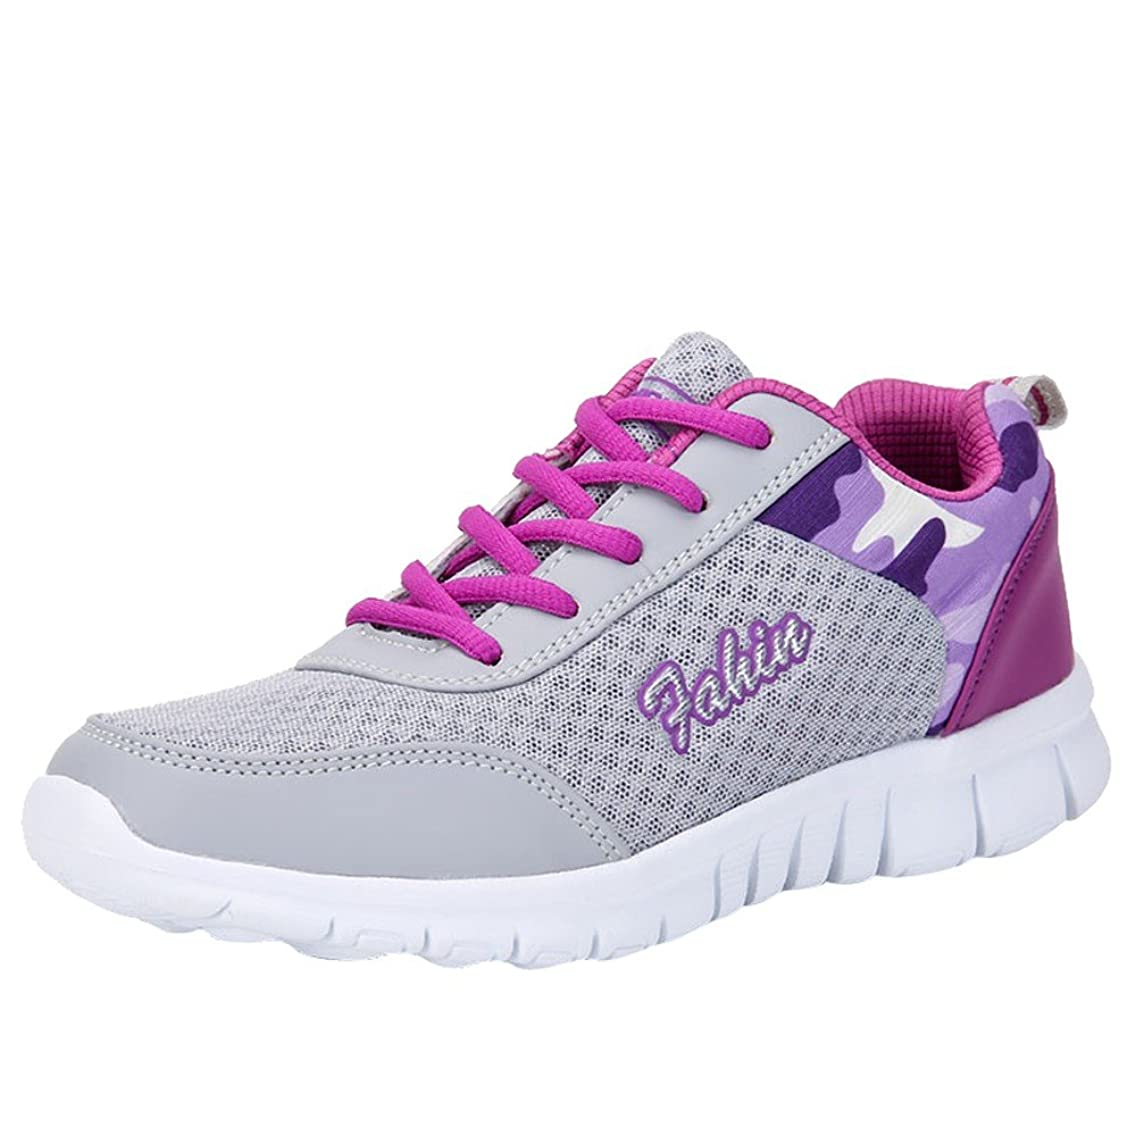 2018 Women Girls Shoes Casual Sports Mesh Wedges Sneakers for Outdoor Walking